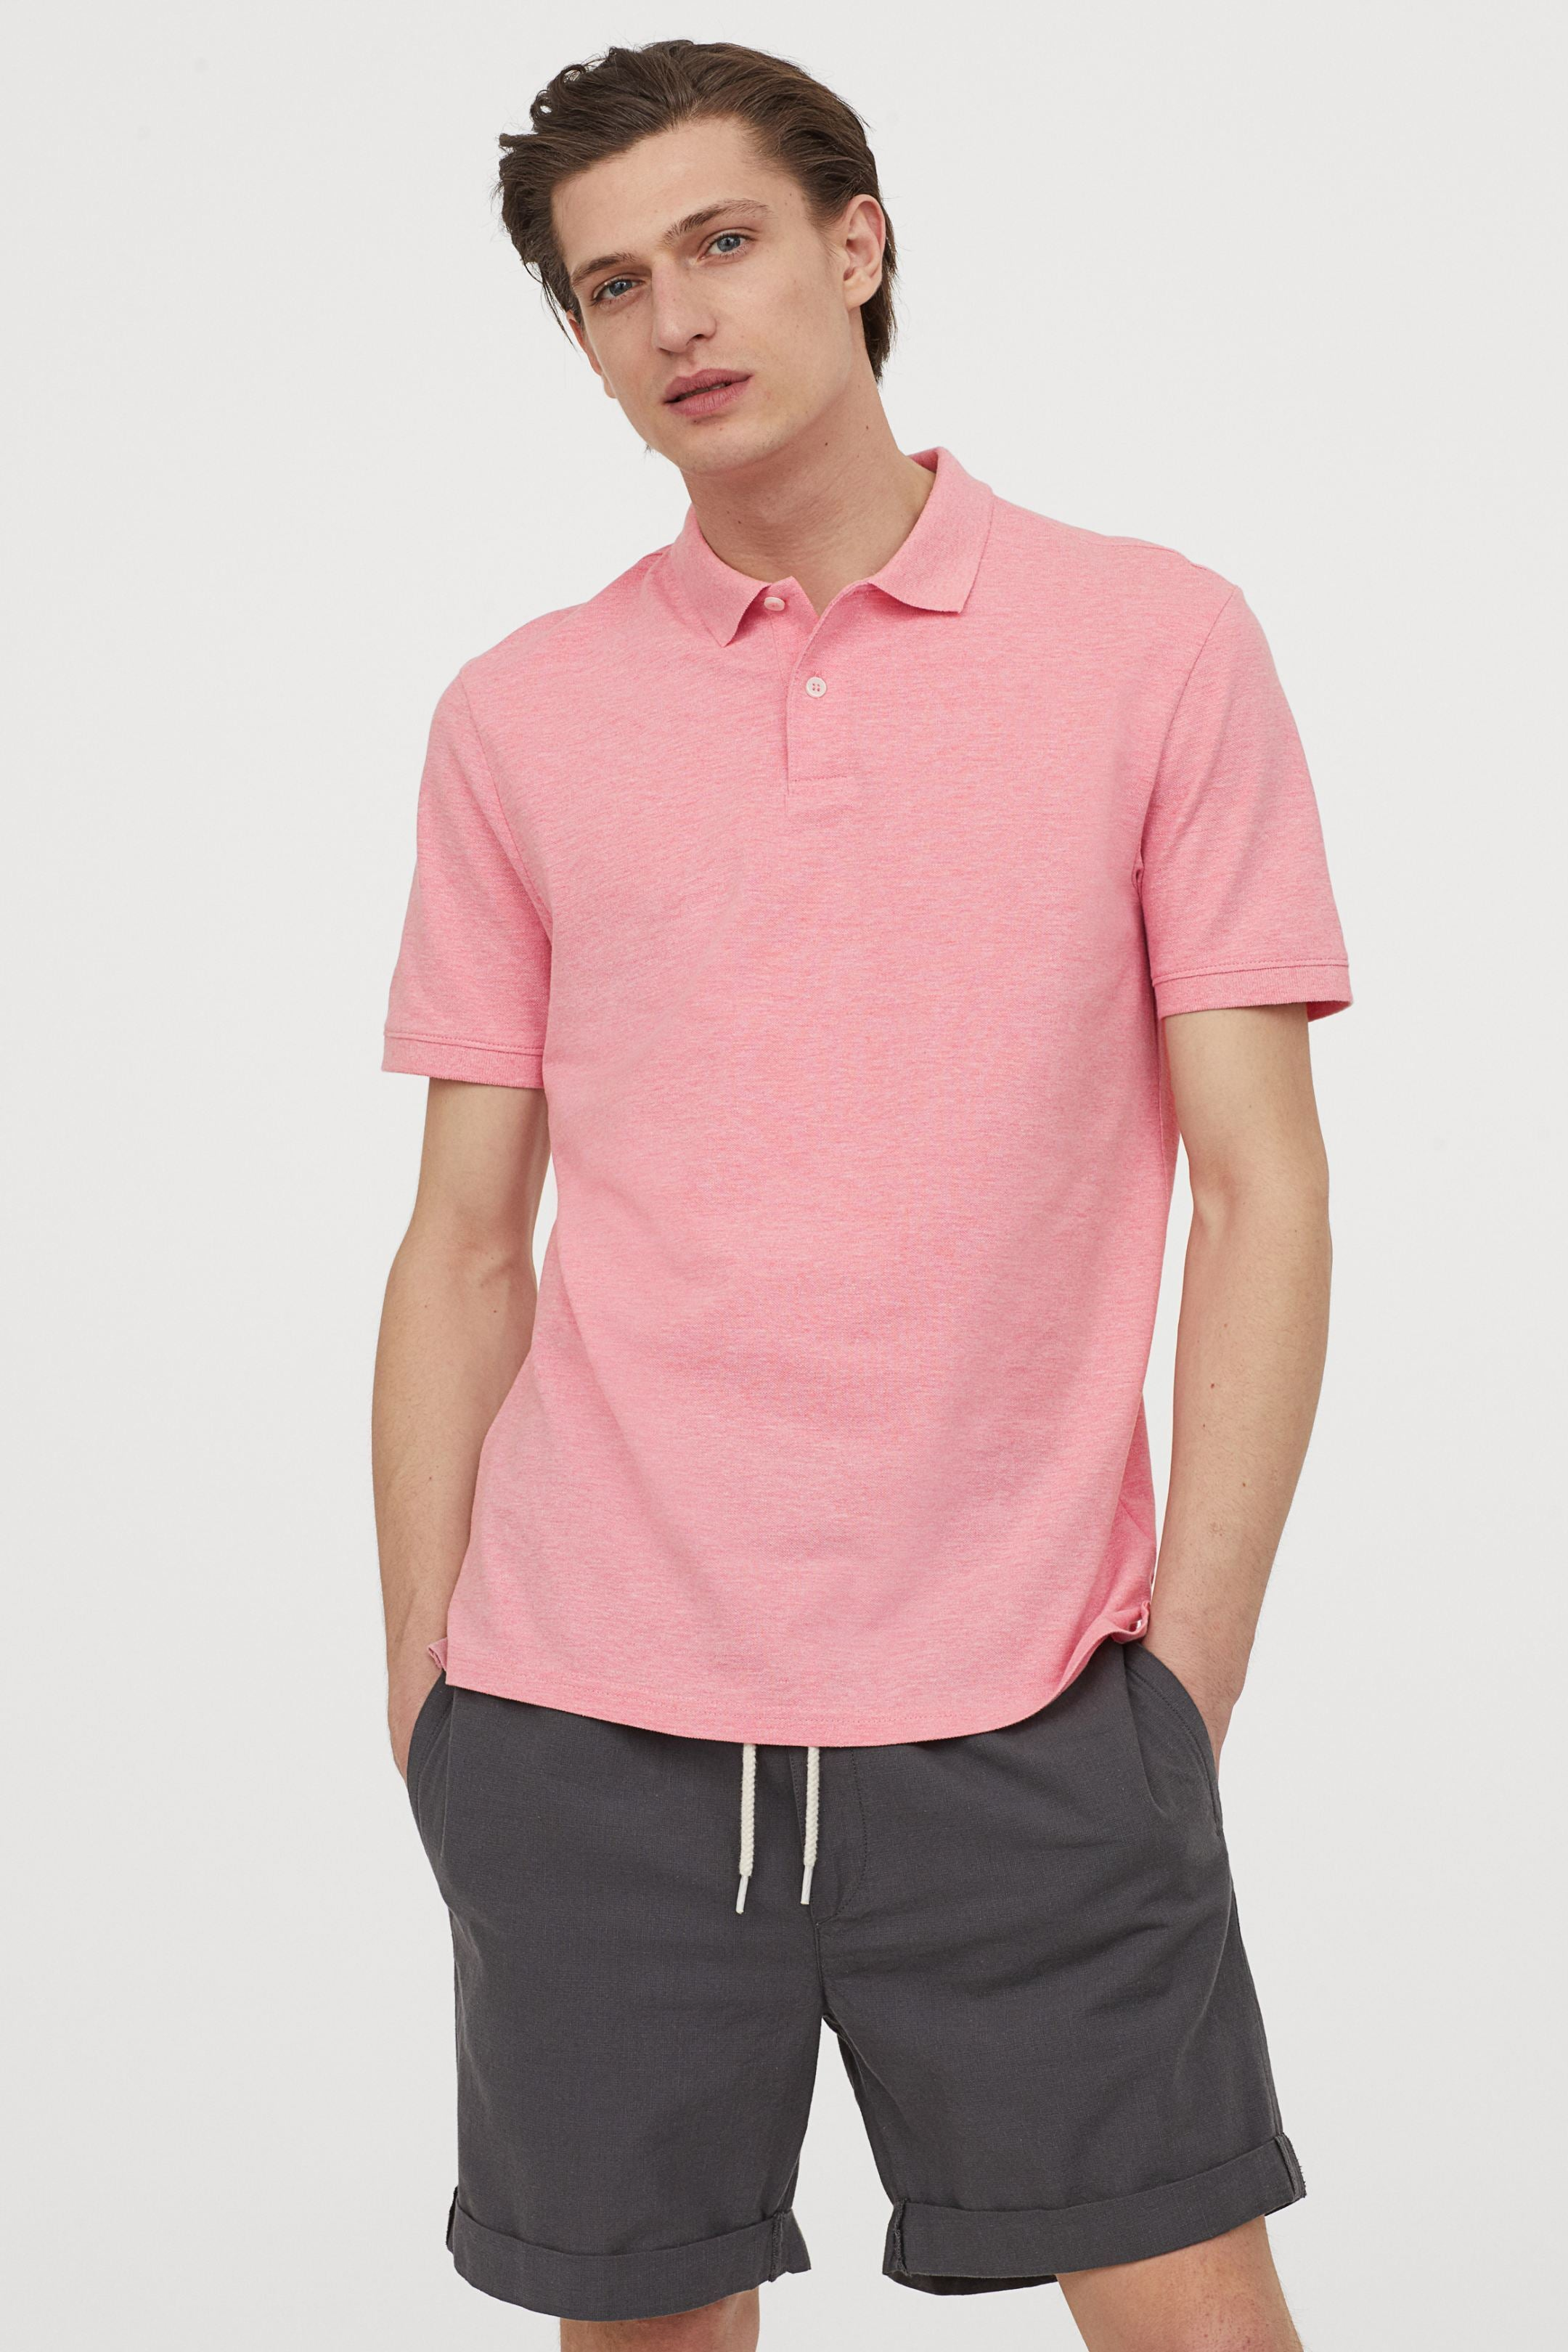 Classier: Buy H&M Cotton Polo Shirt